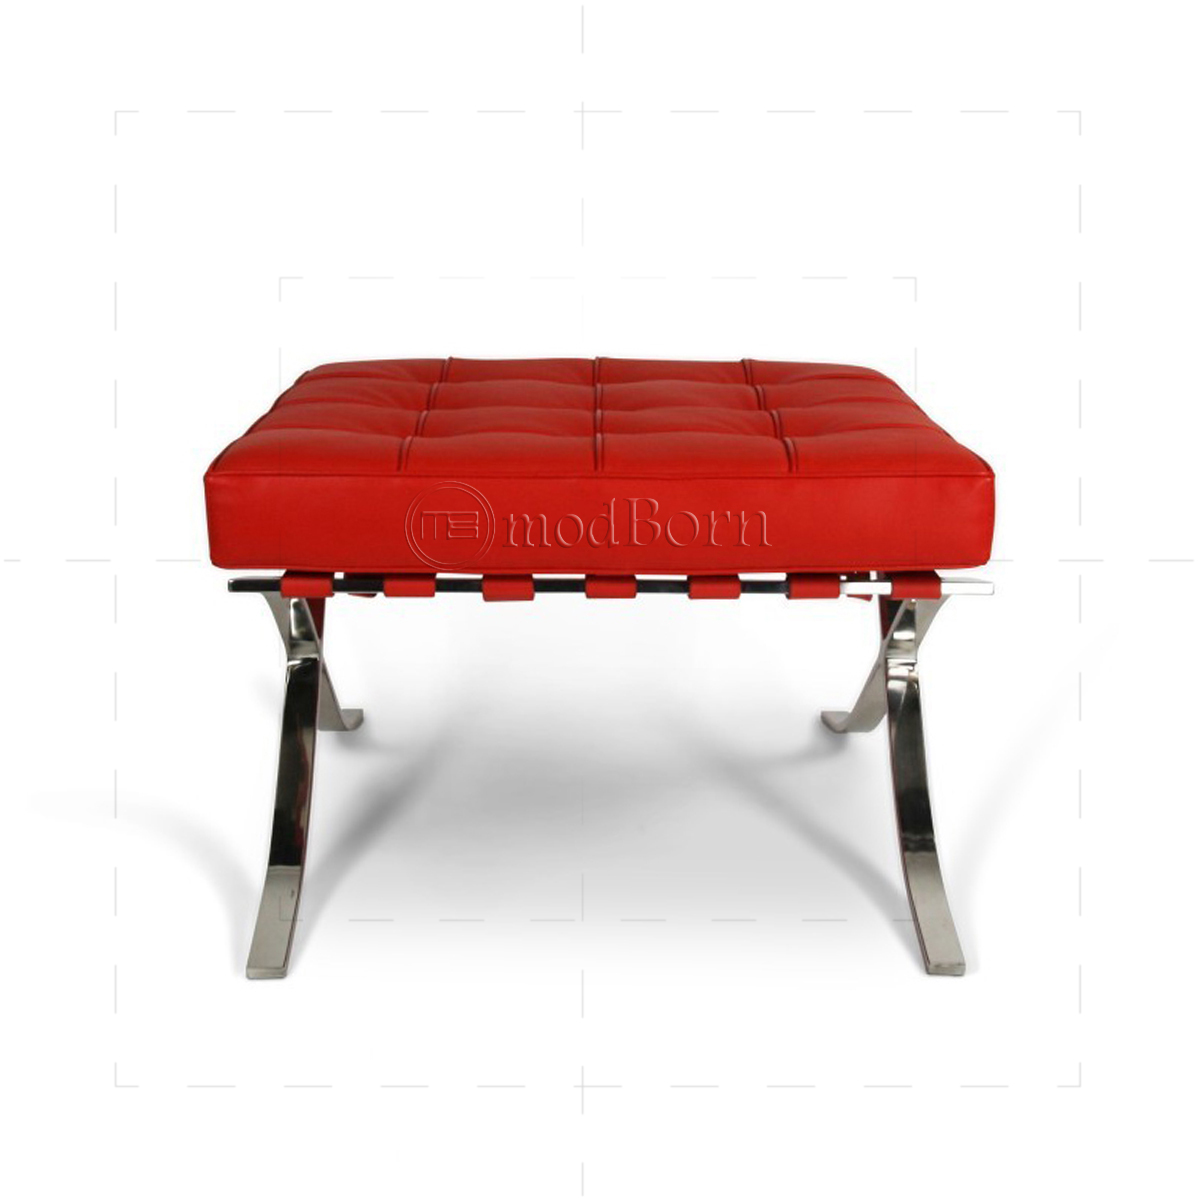 barcelona chair replica uk herman miller used office chairs ludwig mies van der rohe style ottoman red